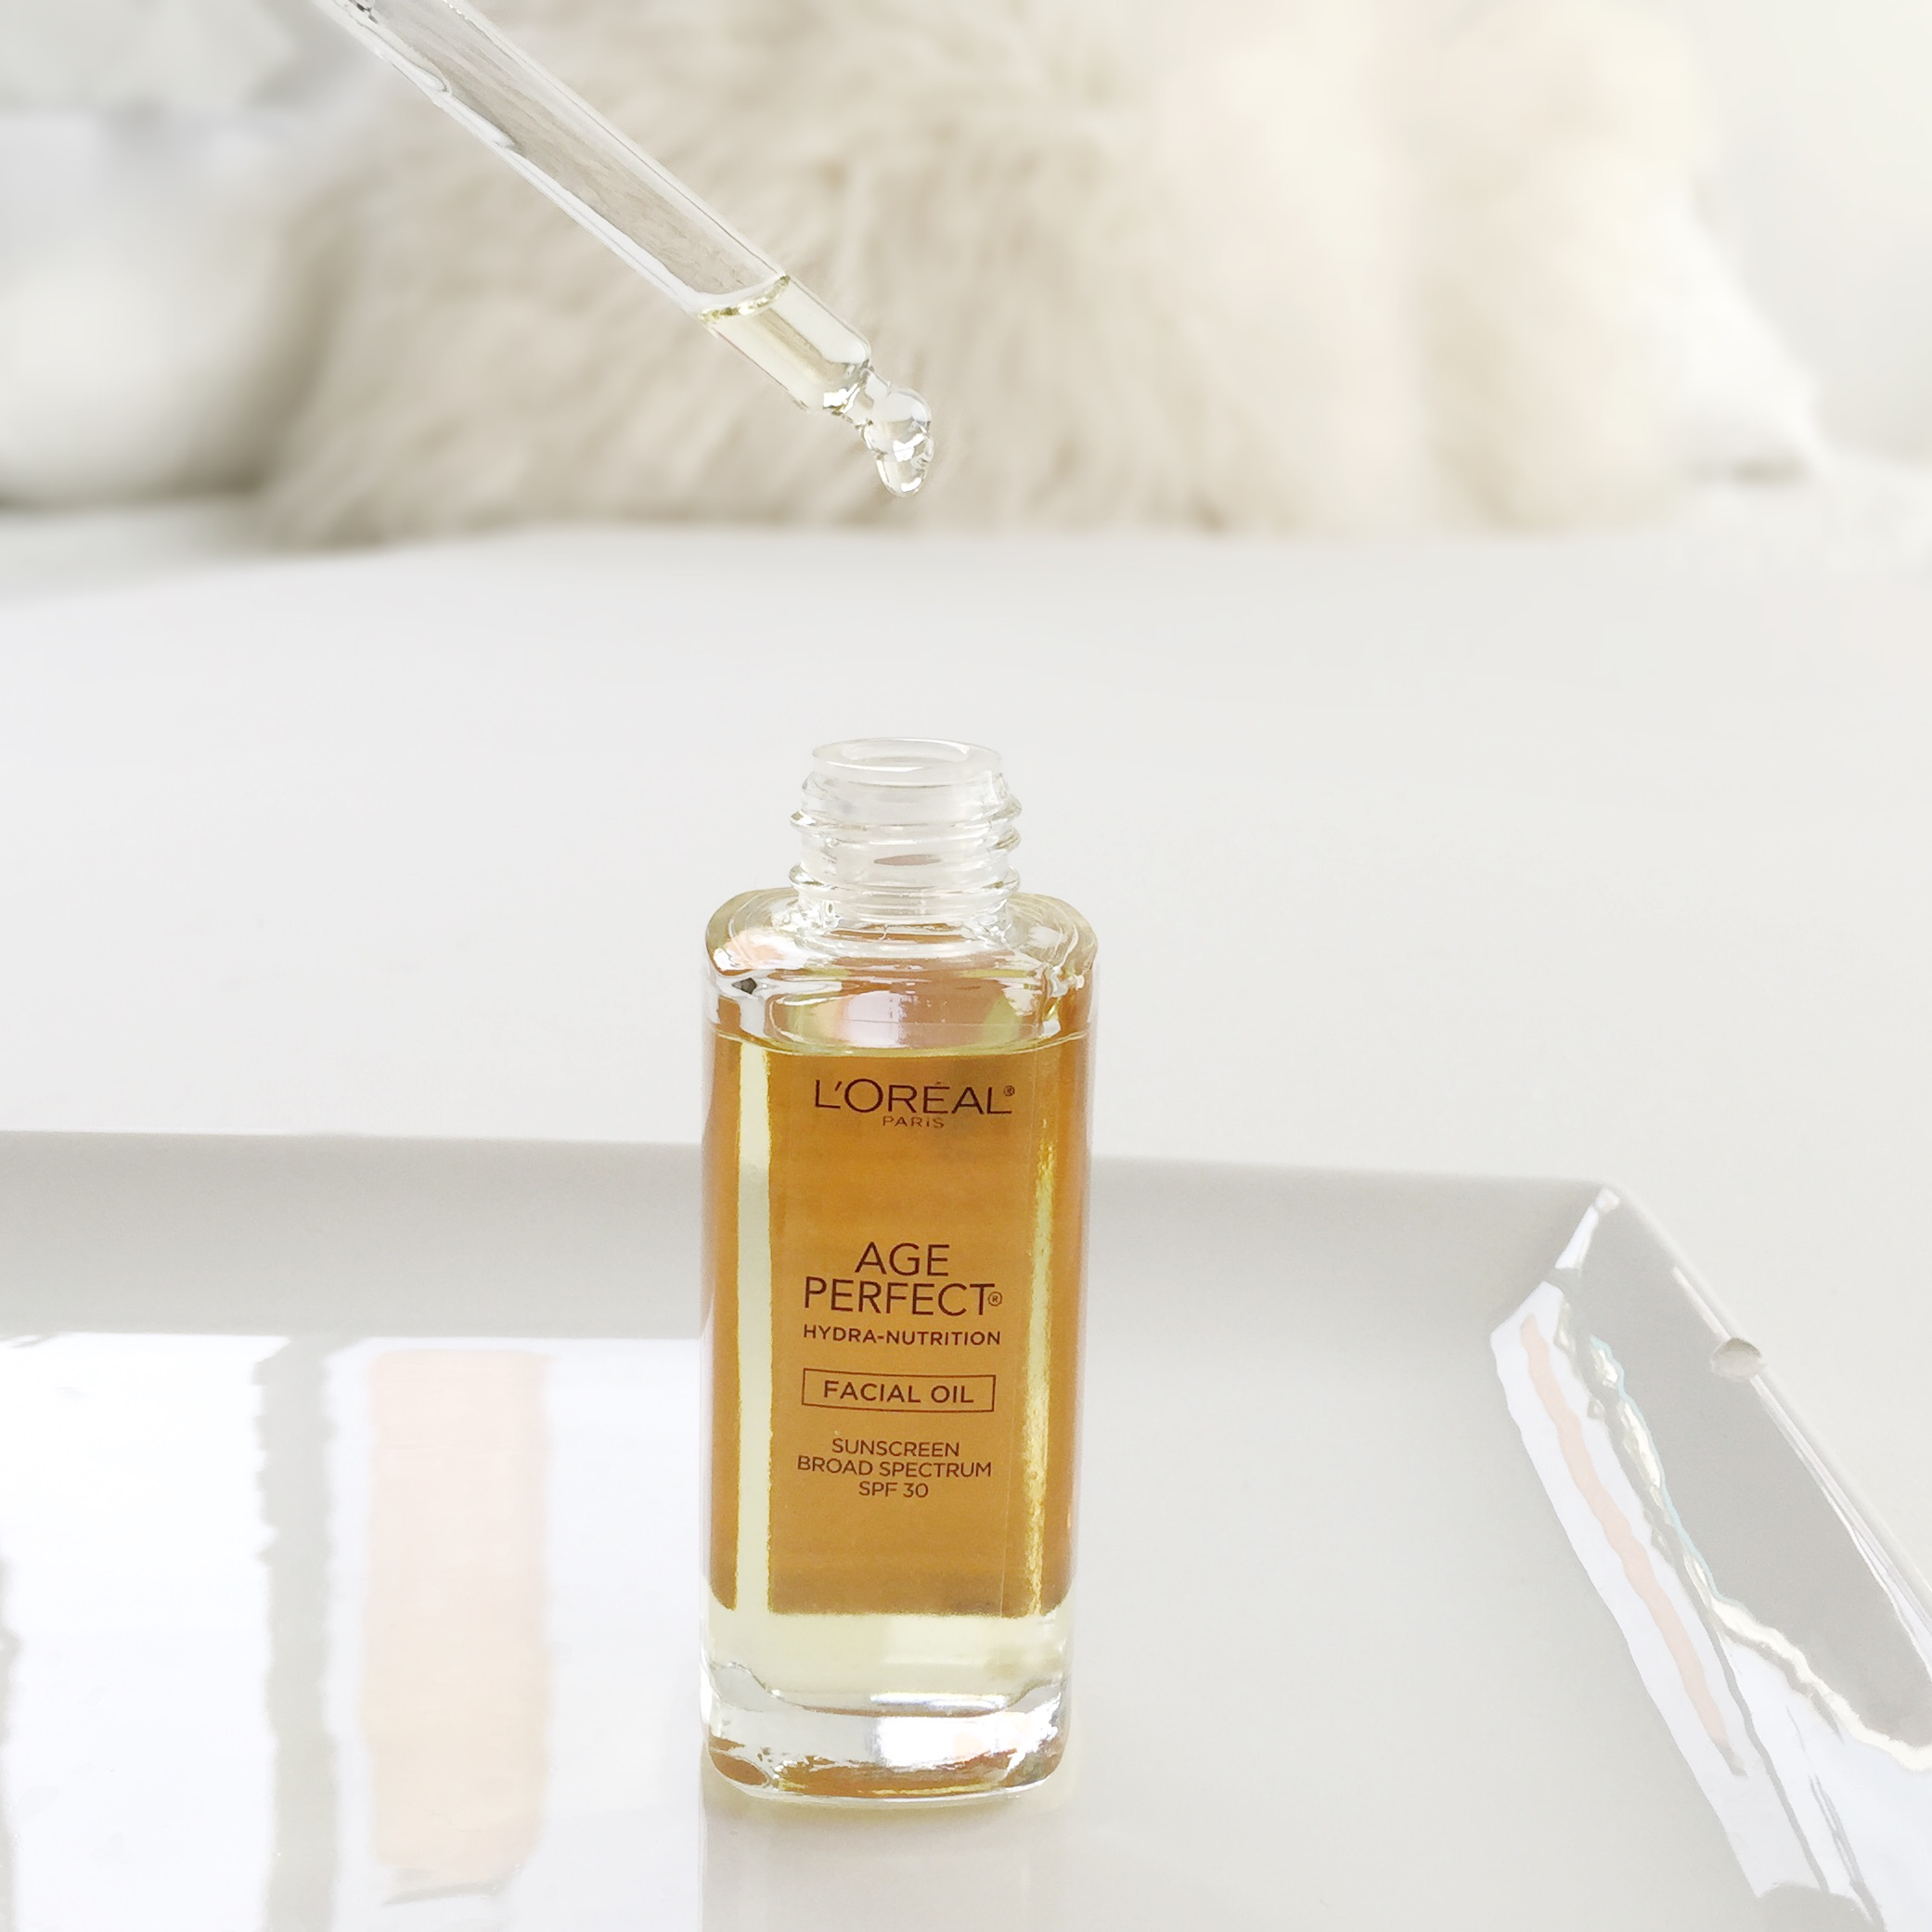 L'Oreal Age Perfect Facial Oil with SPF 30